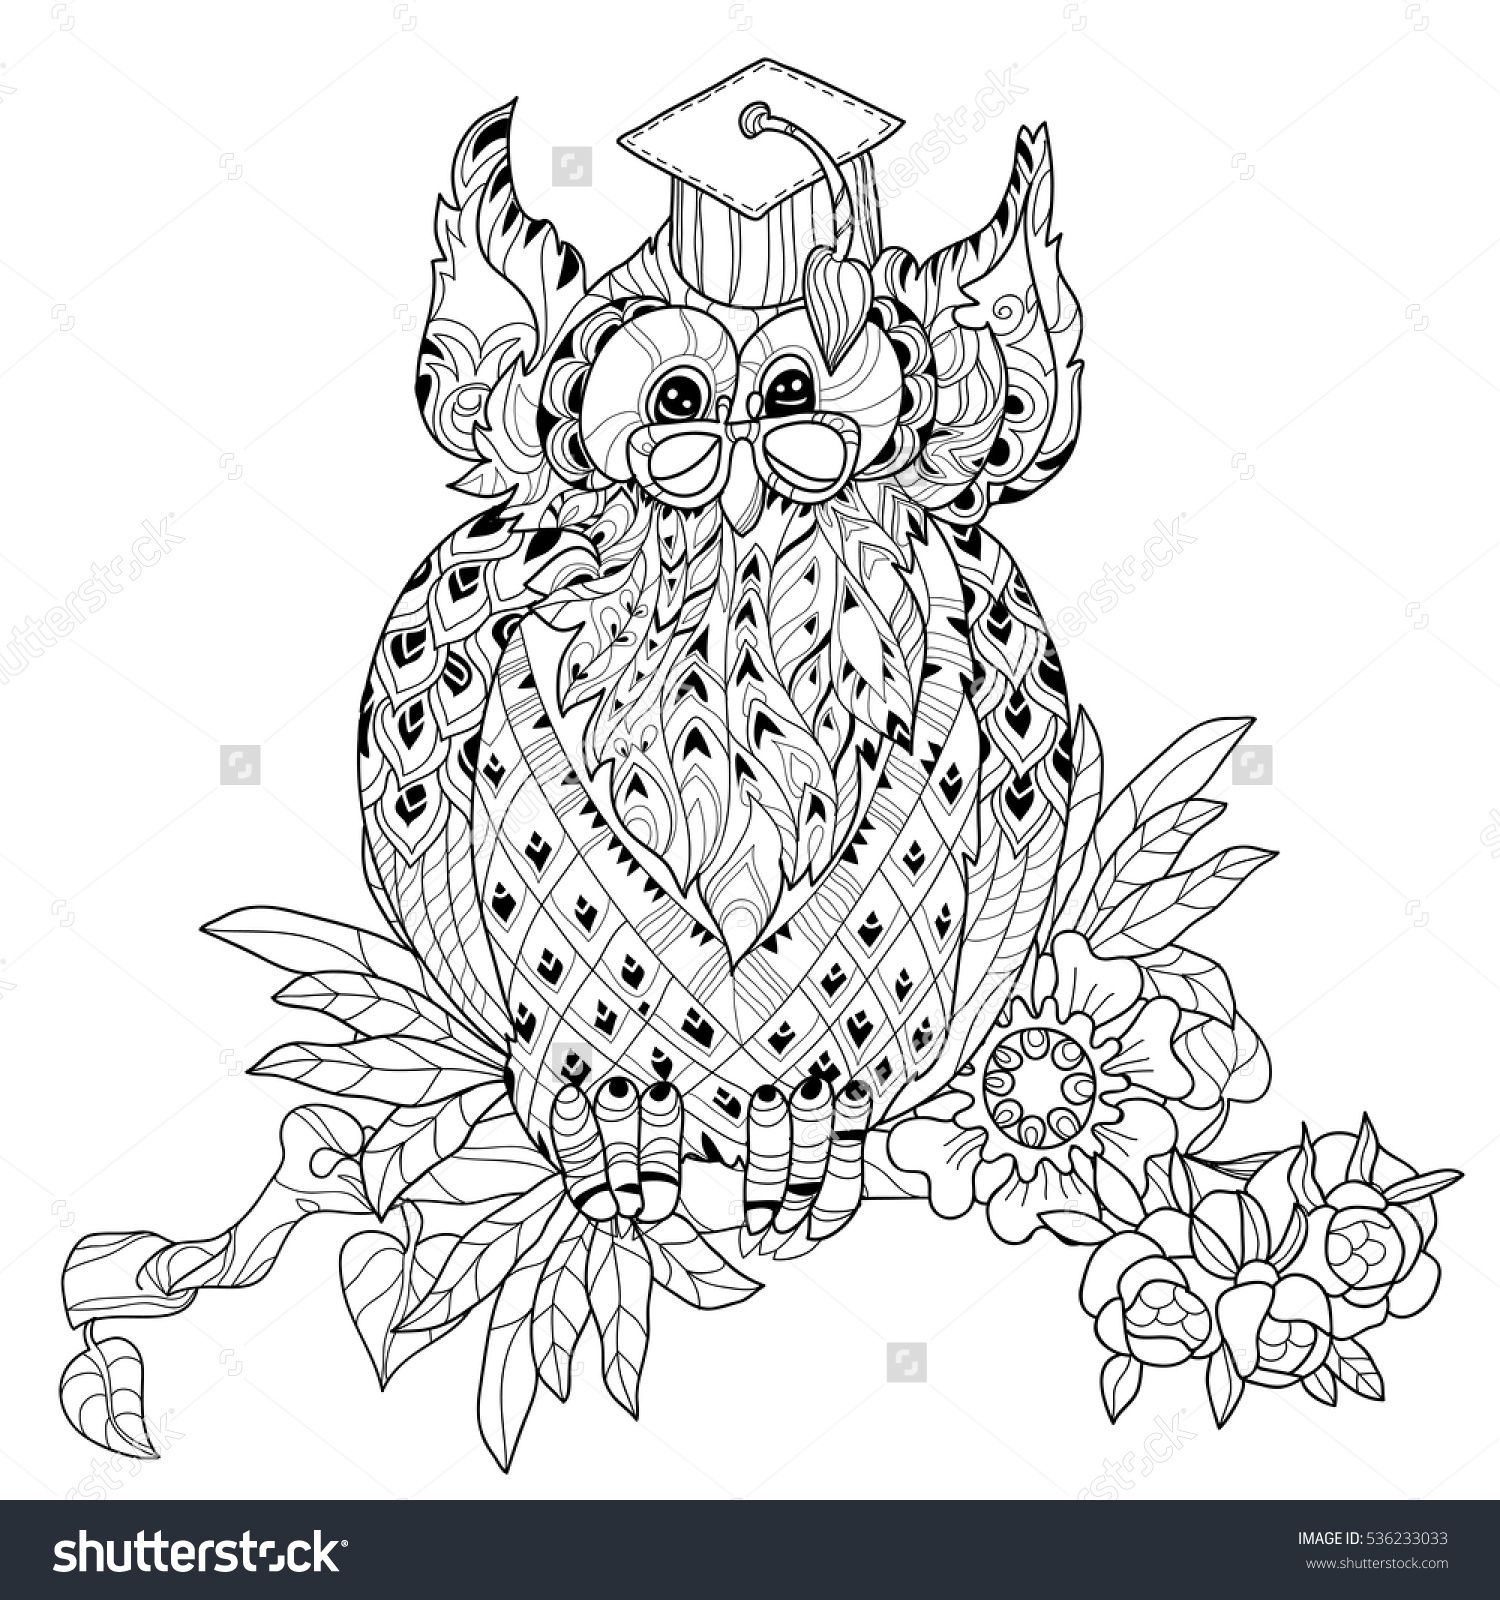 stock-vector-old-owl-on-tree-branch-hand-drawn-doodle-vector-on-white-background-isolated-illustration-zen-art-536233033.jpg (1500×1600)